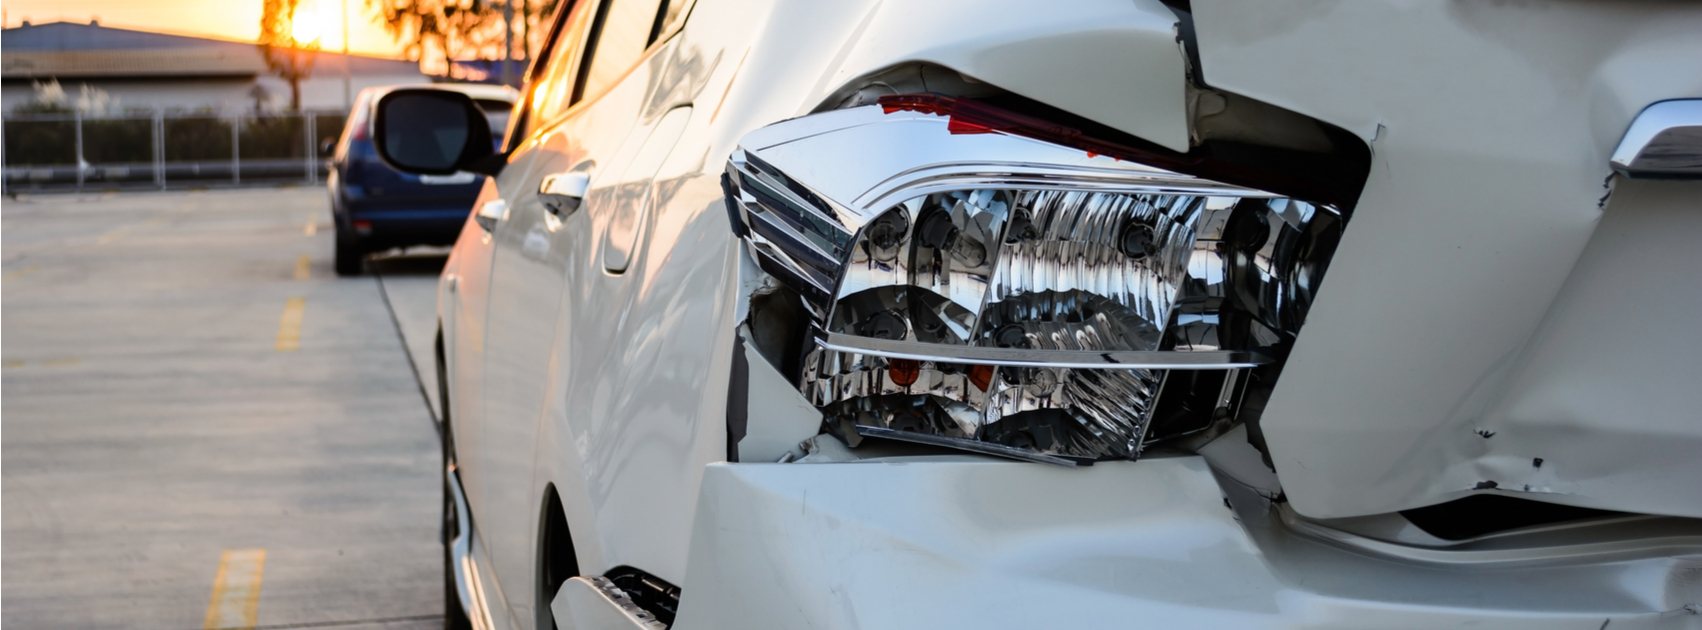 Car Accident Lawyer Attorney